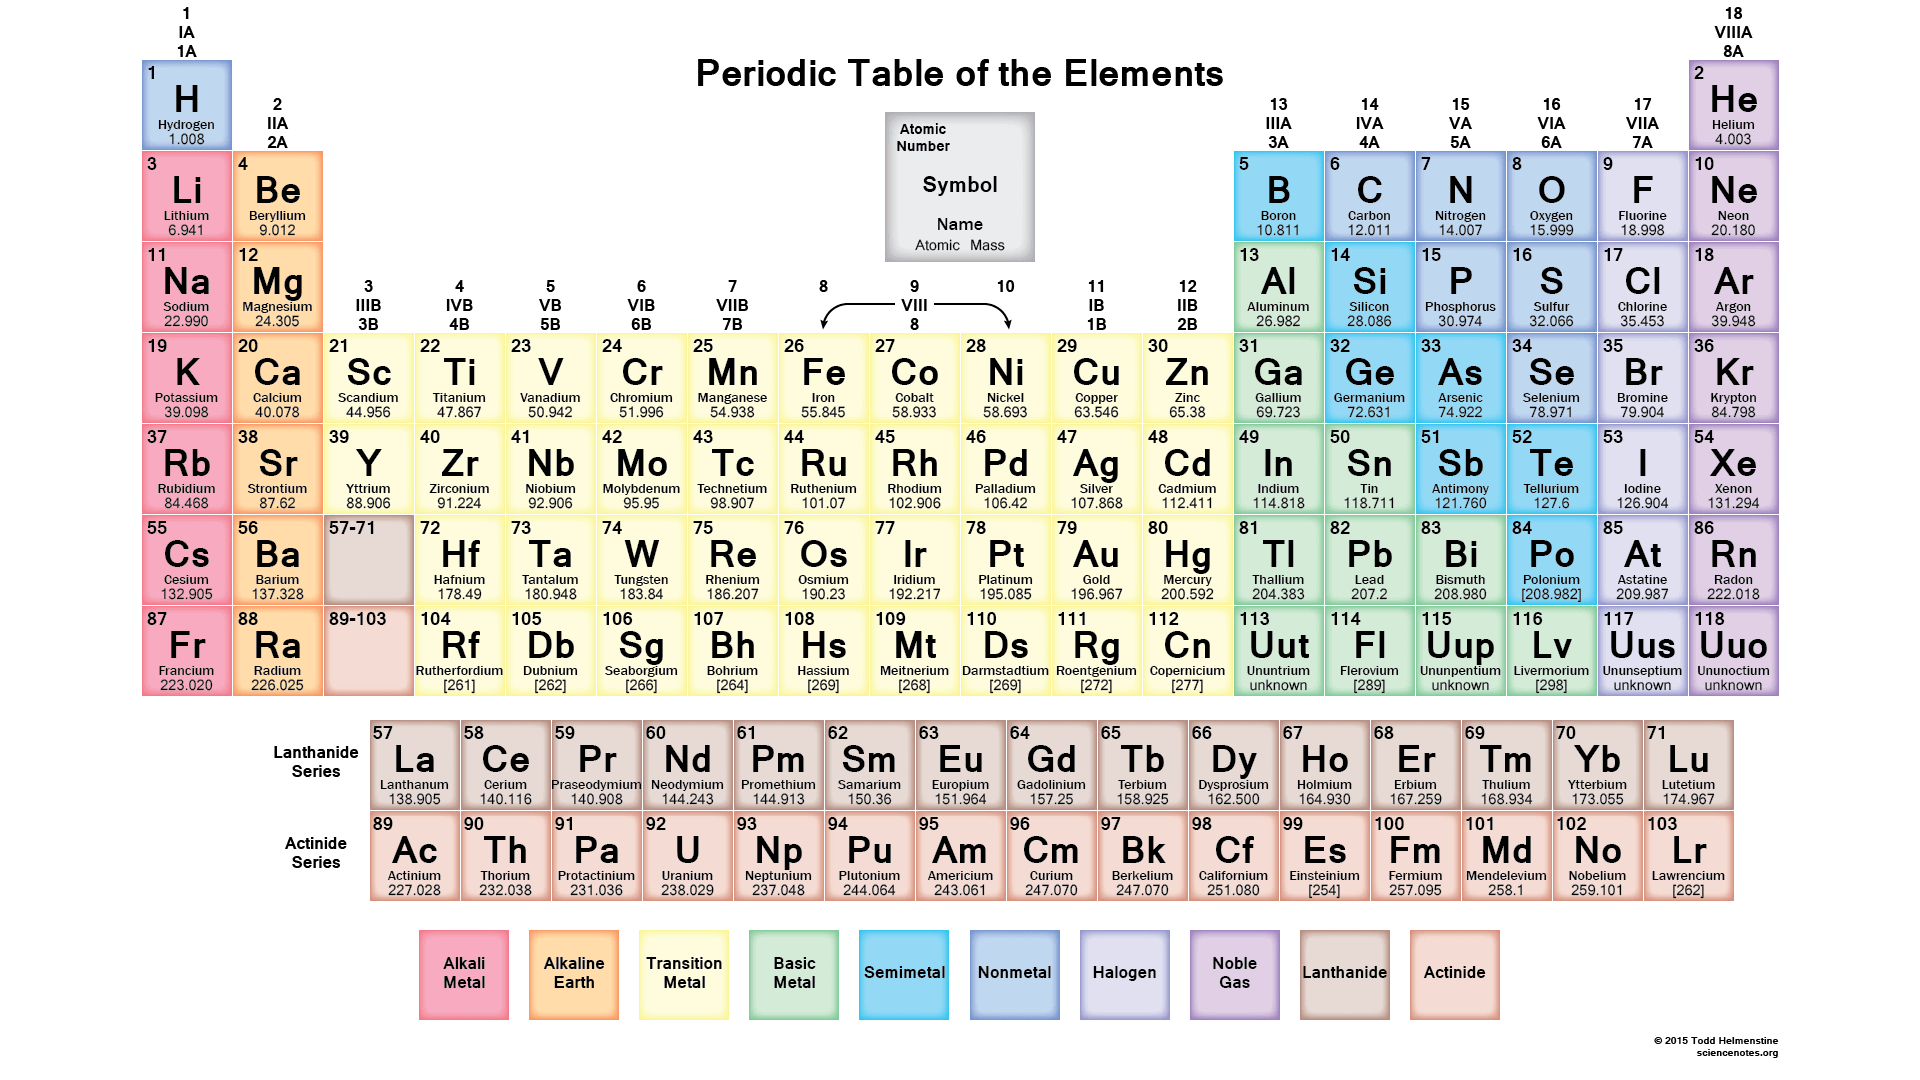 Hd periodic table wallpaper muted colors 2015 hd periodic table wallpaper with color element cells gamestrikefo Choice Image